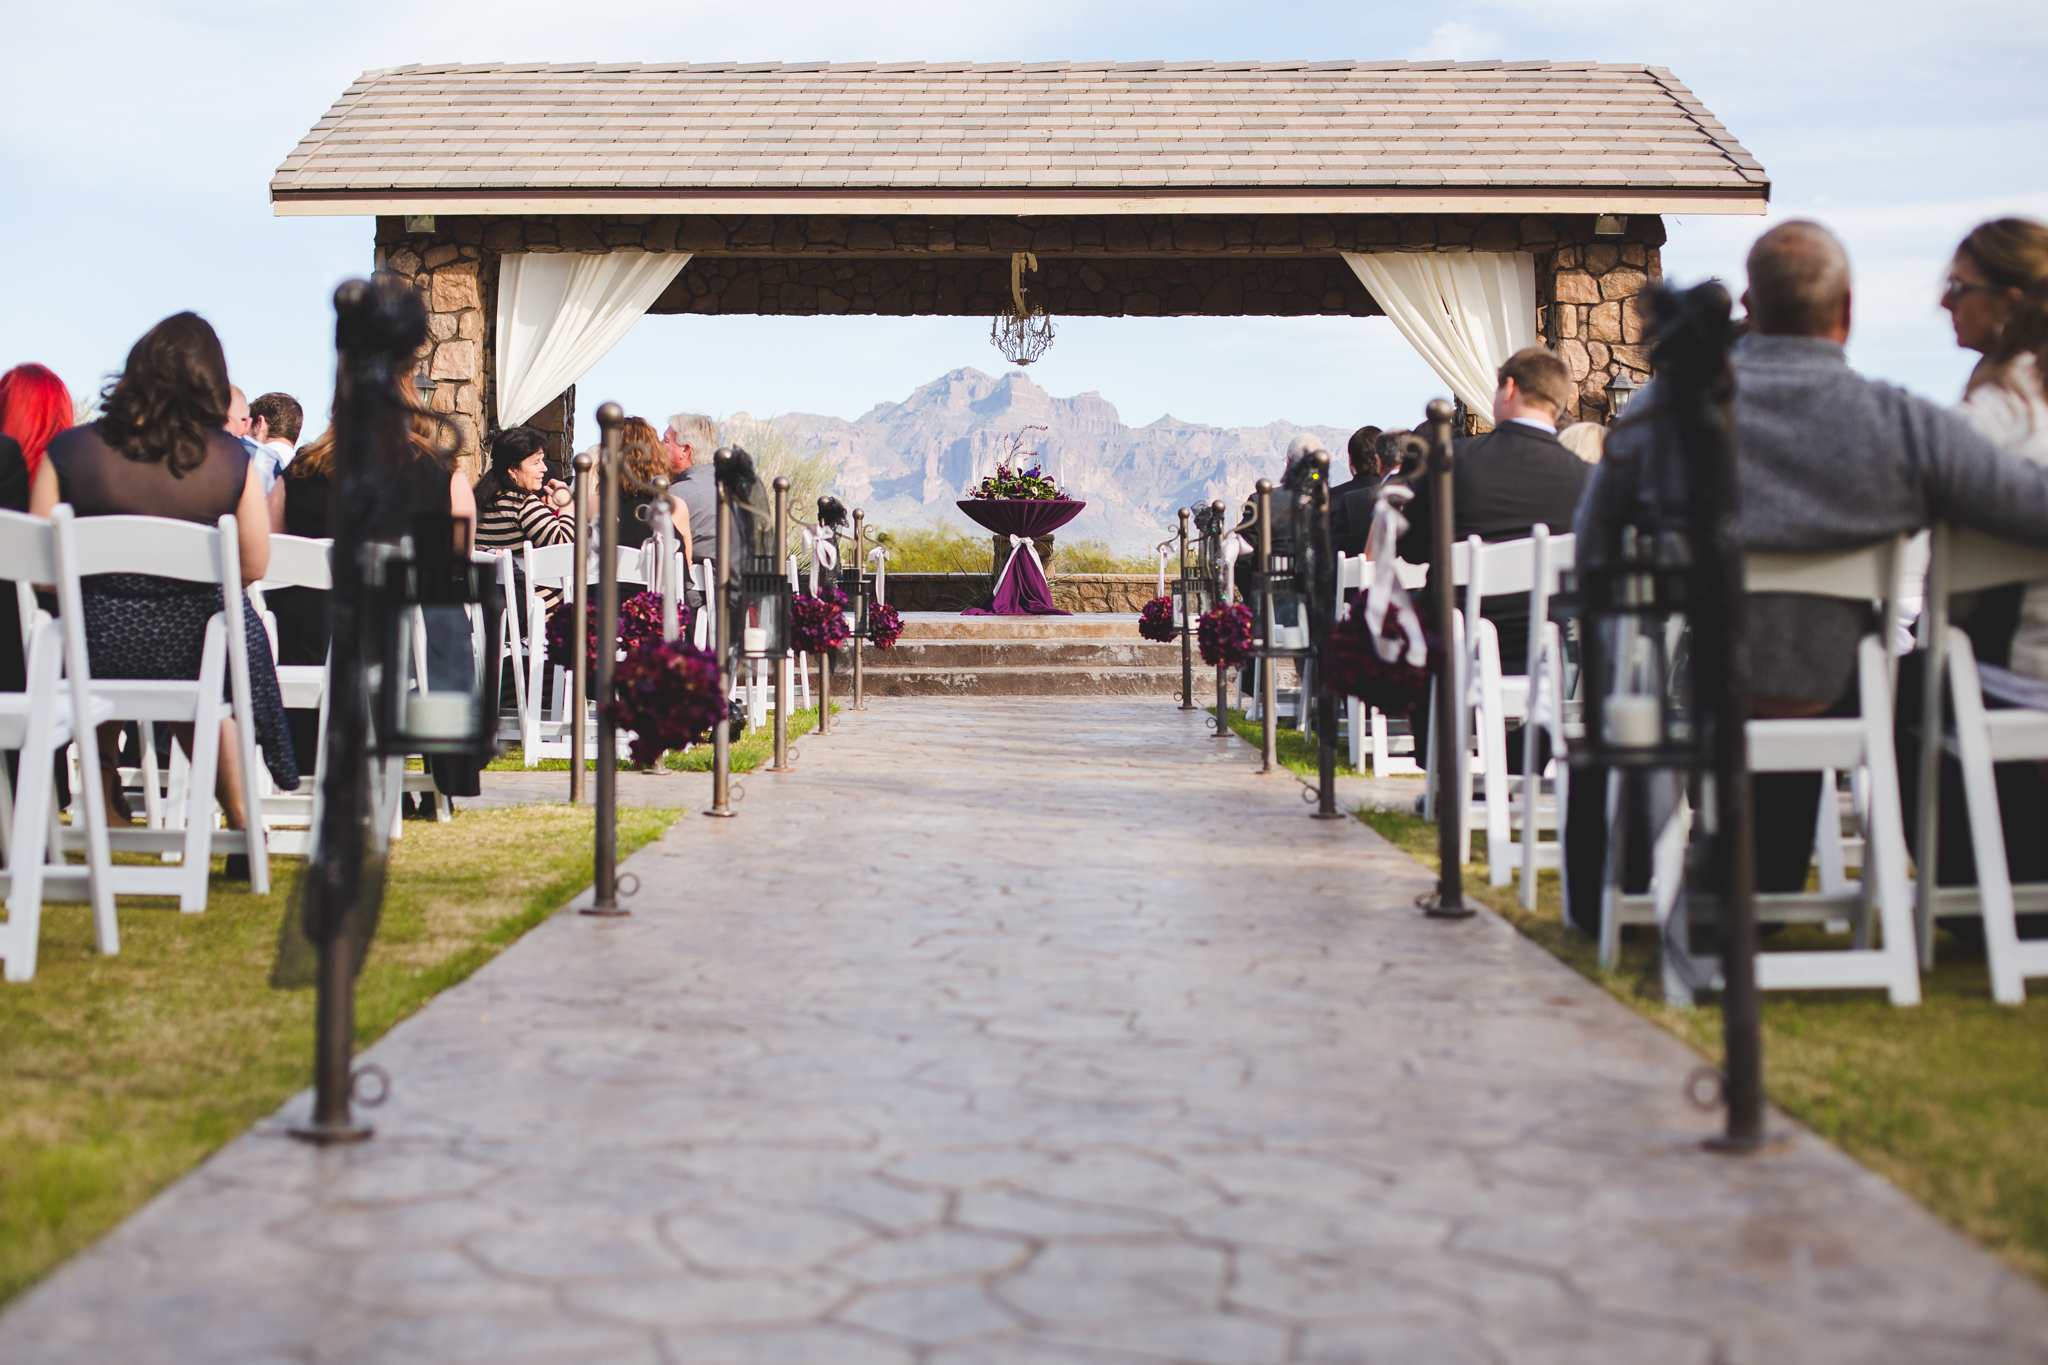 beautiful ceremony aisle superstition manor superstition mountains mj